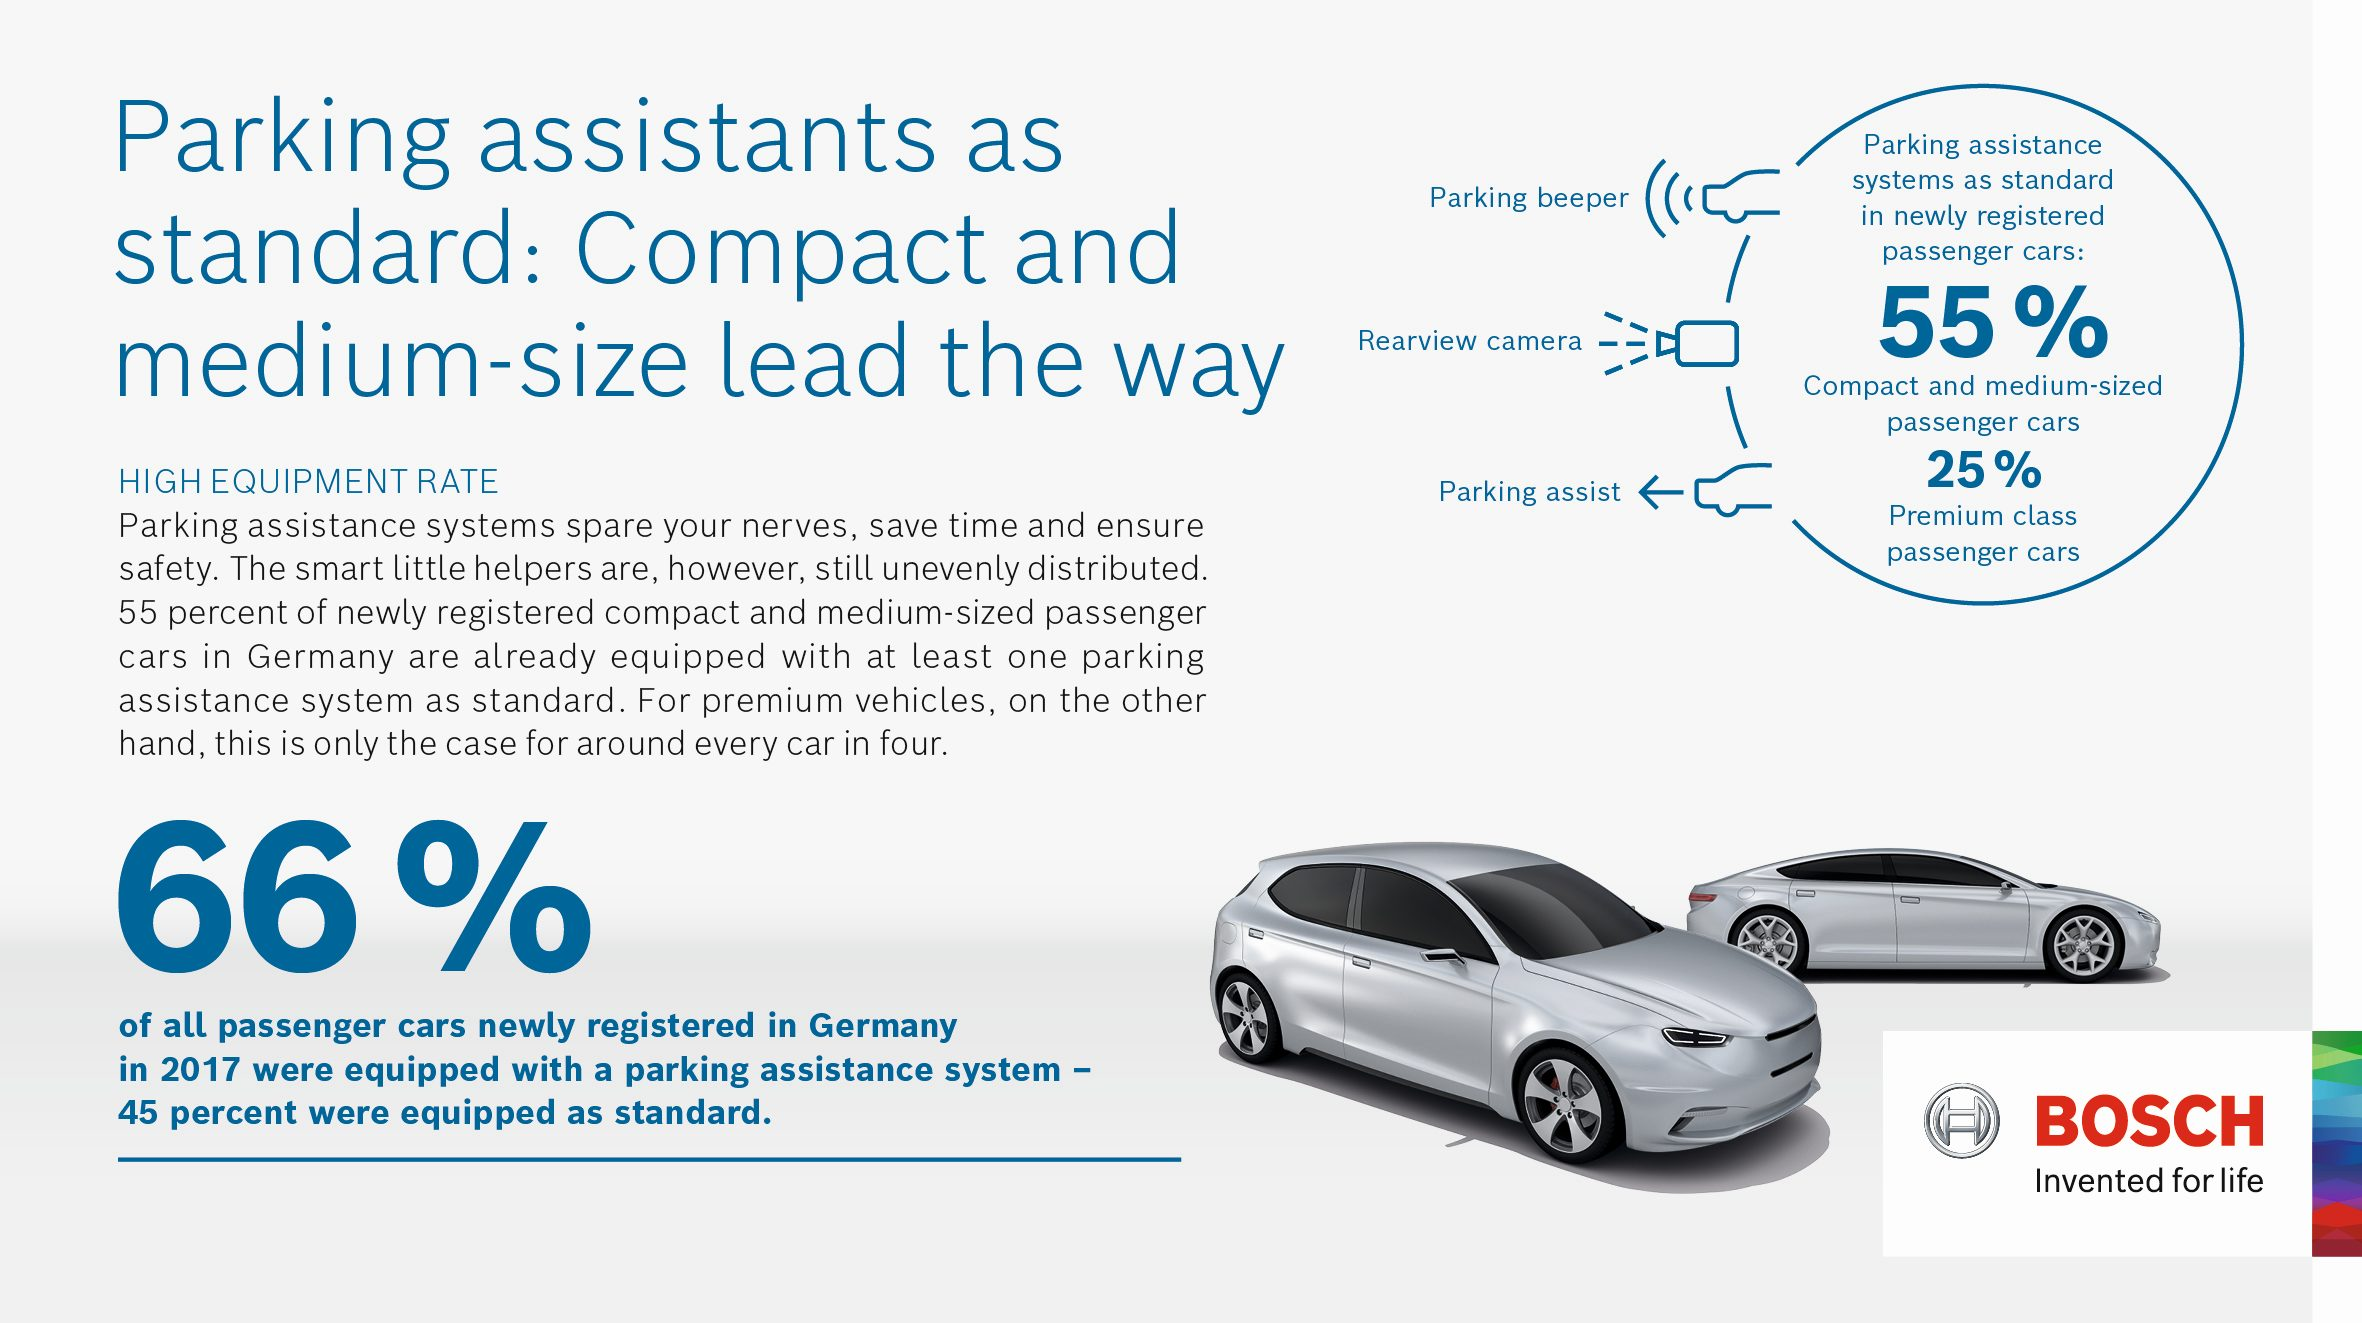 More midsize cars than premium models in  Germany feature parking assistants as standard.